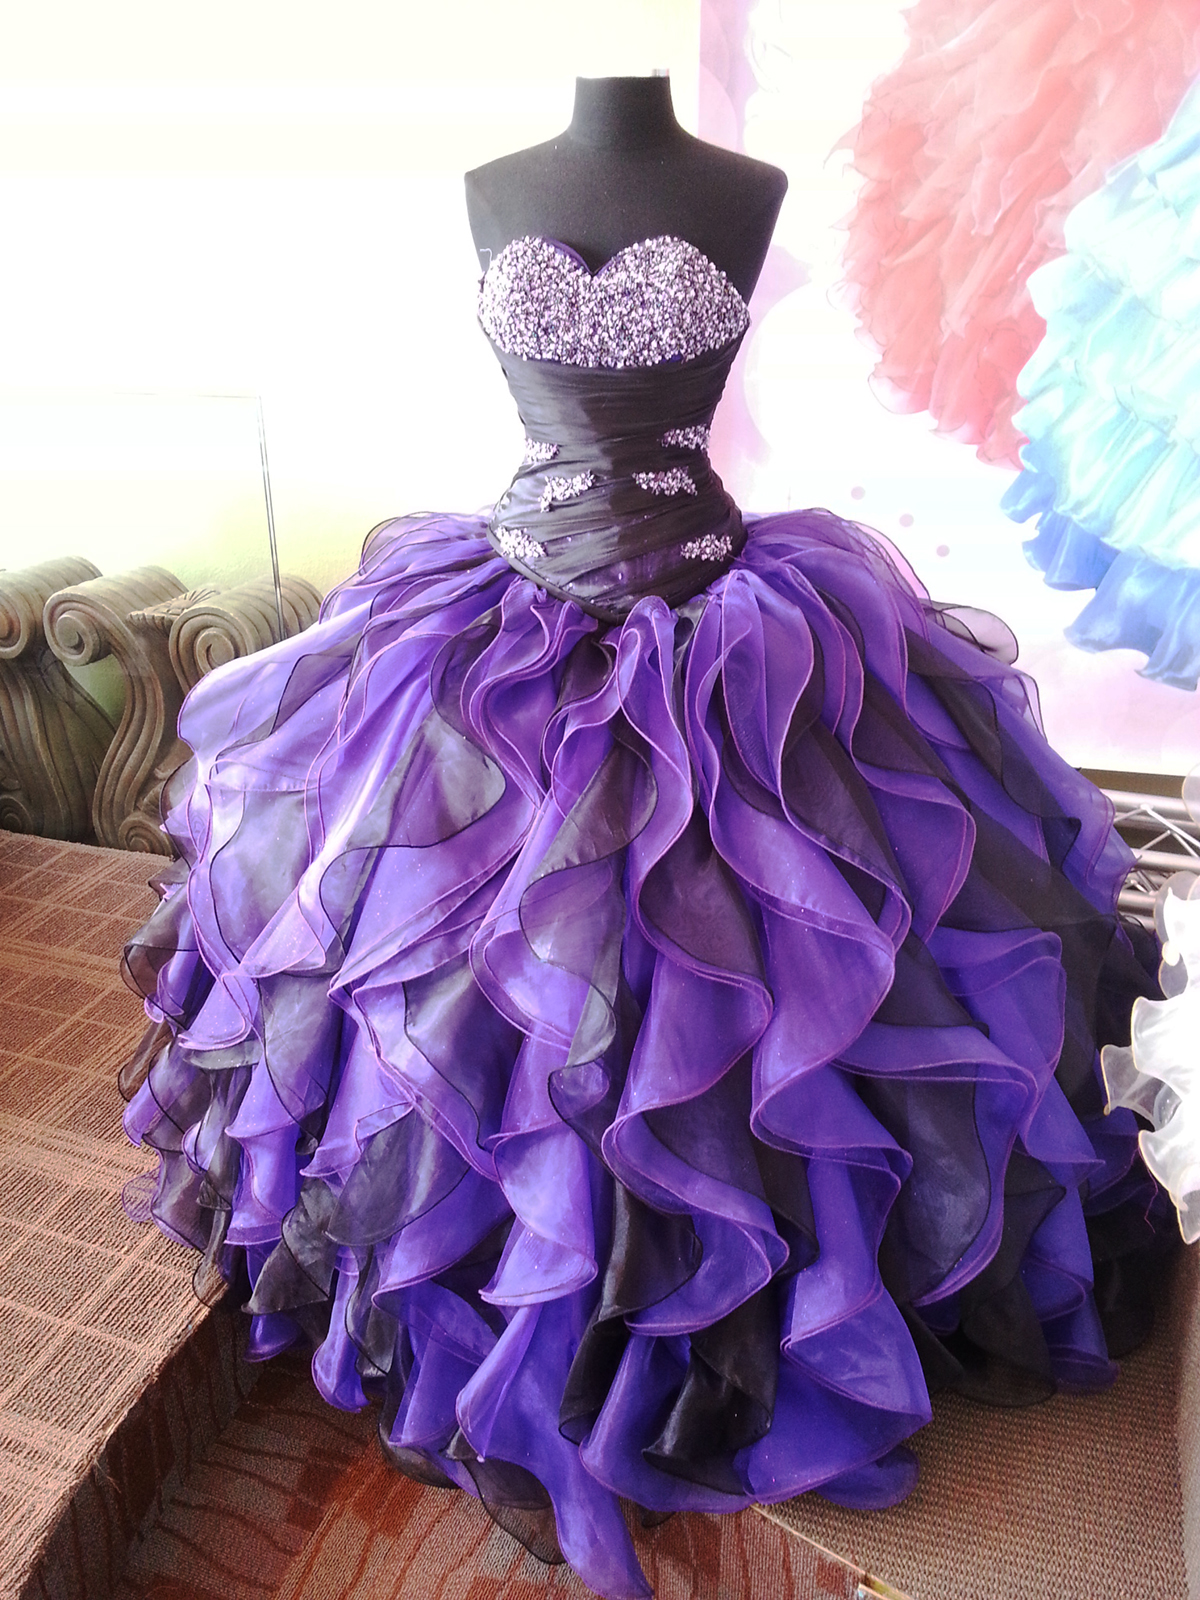 How to Plan a Quince Anos Party | Quinceanera Dresses